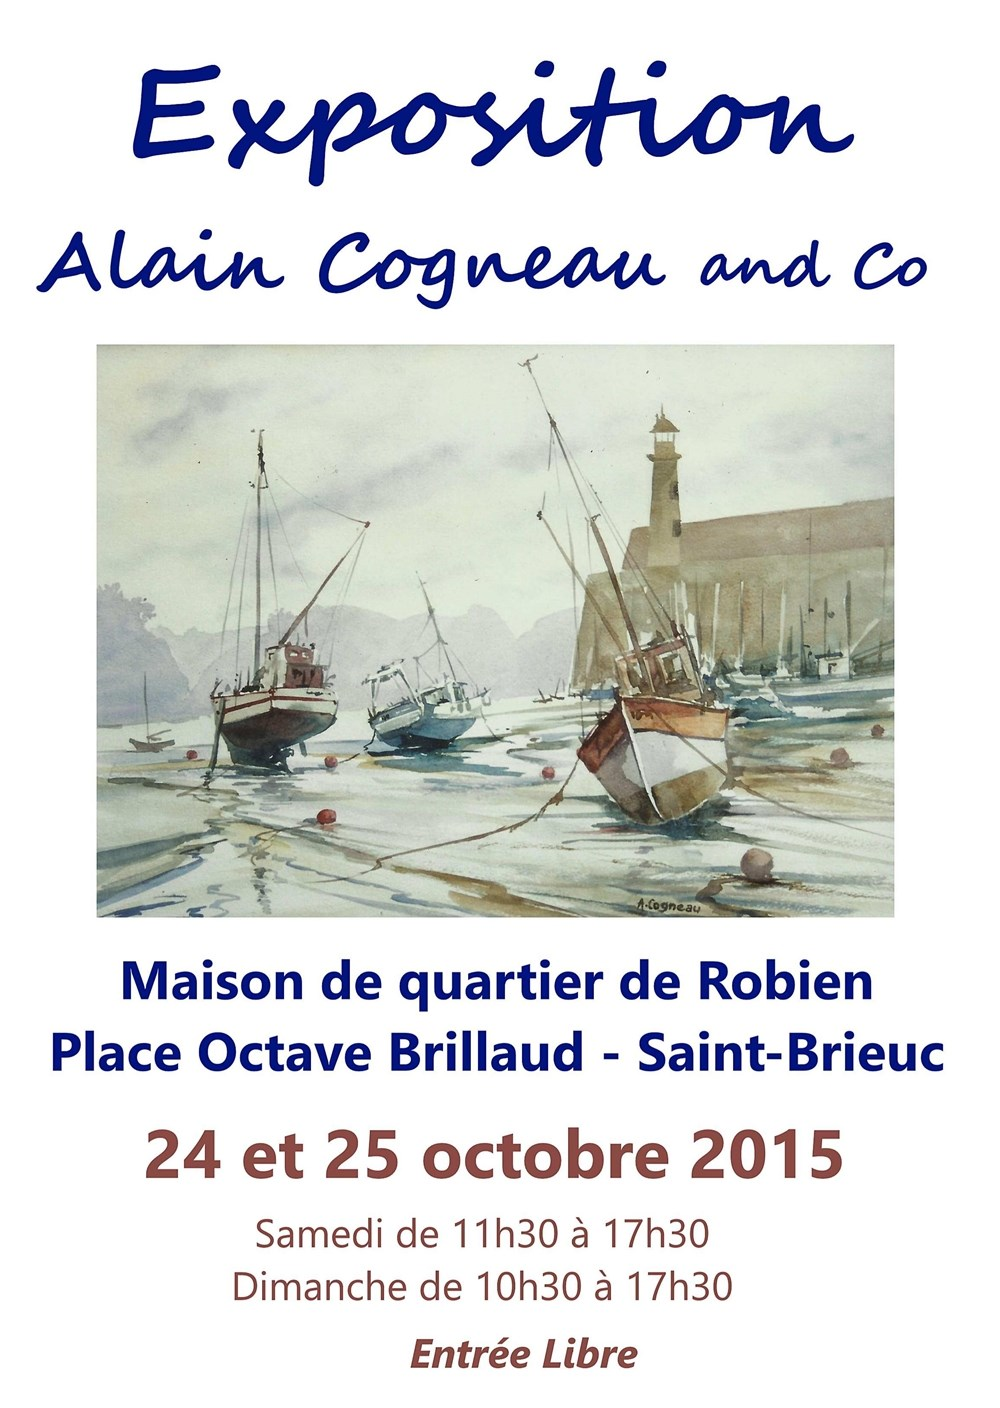 Exposition Alain Cogneau and co